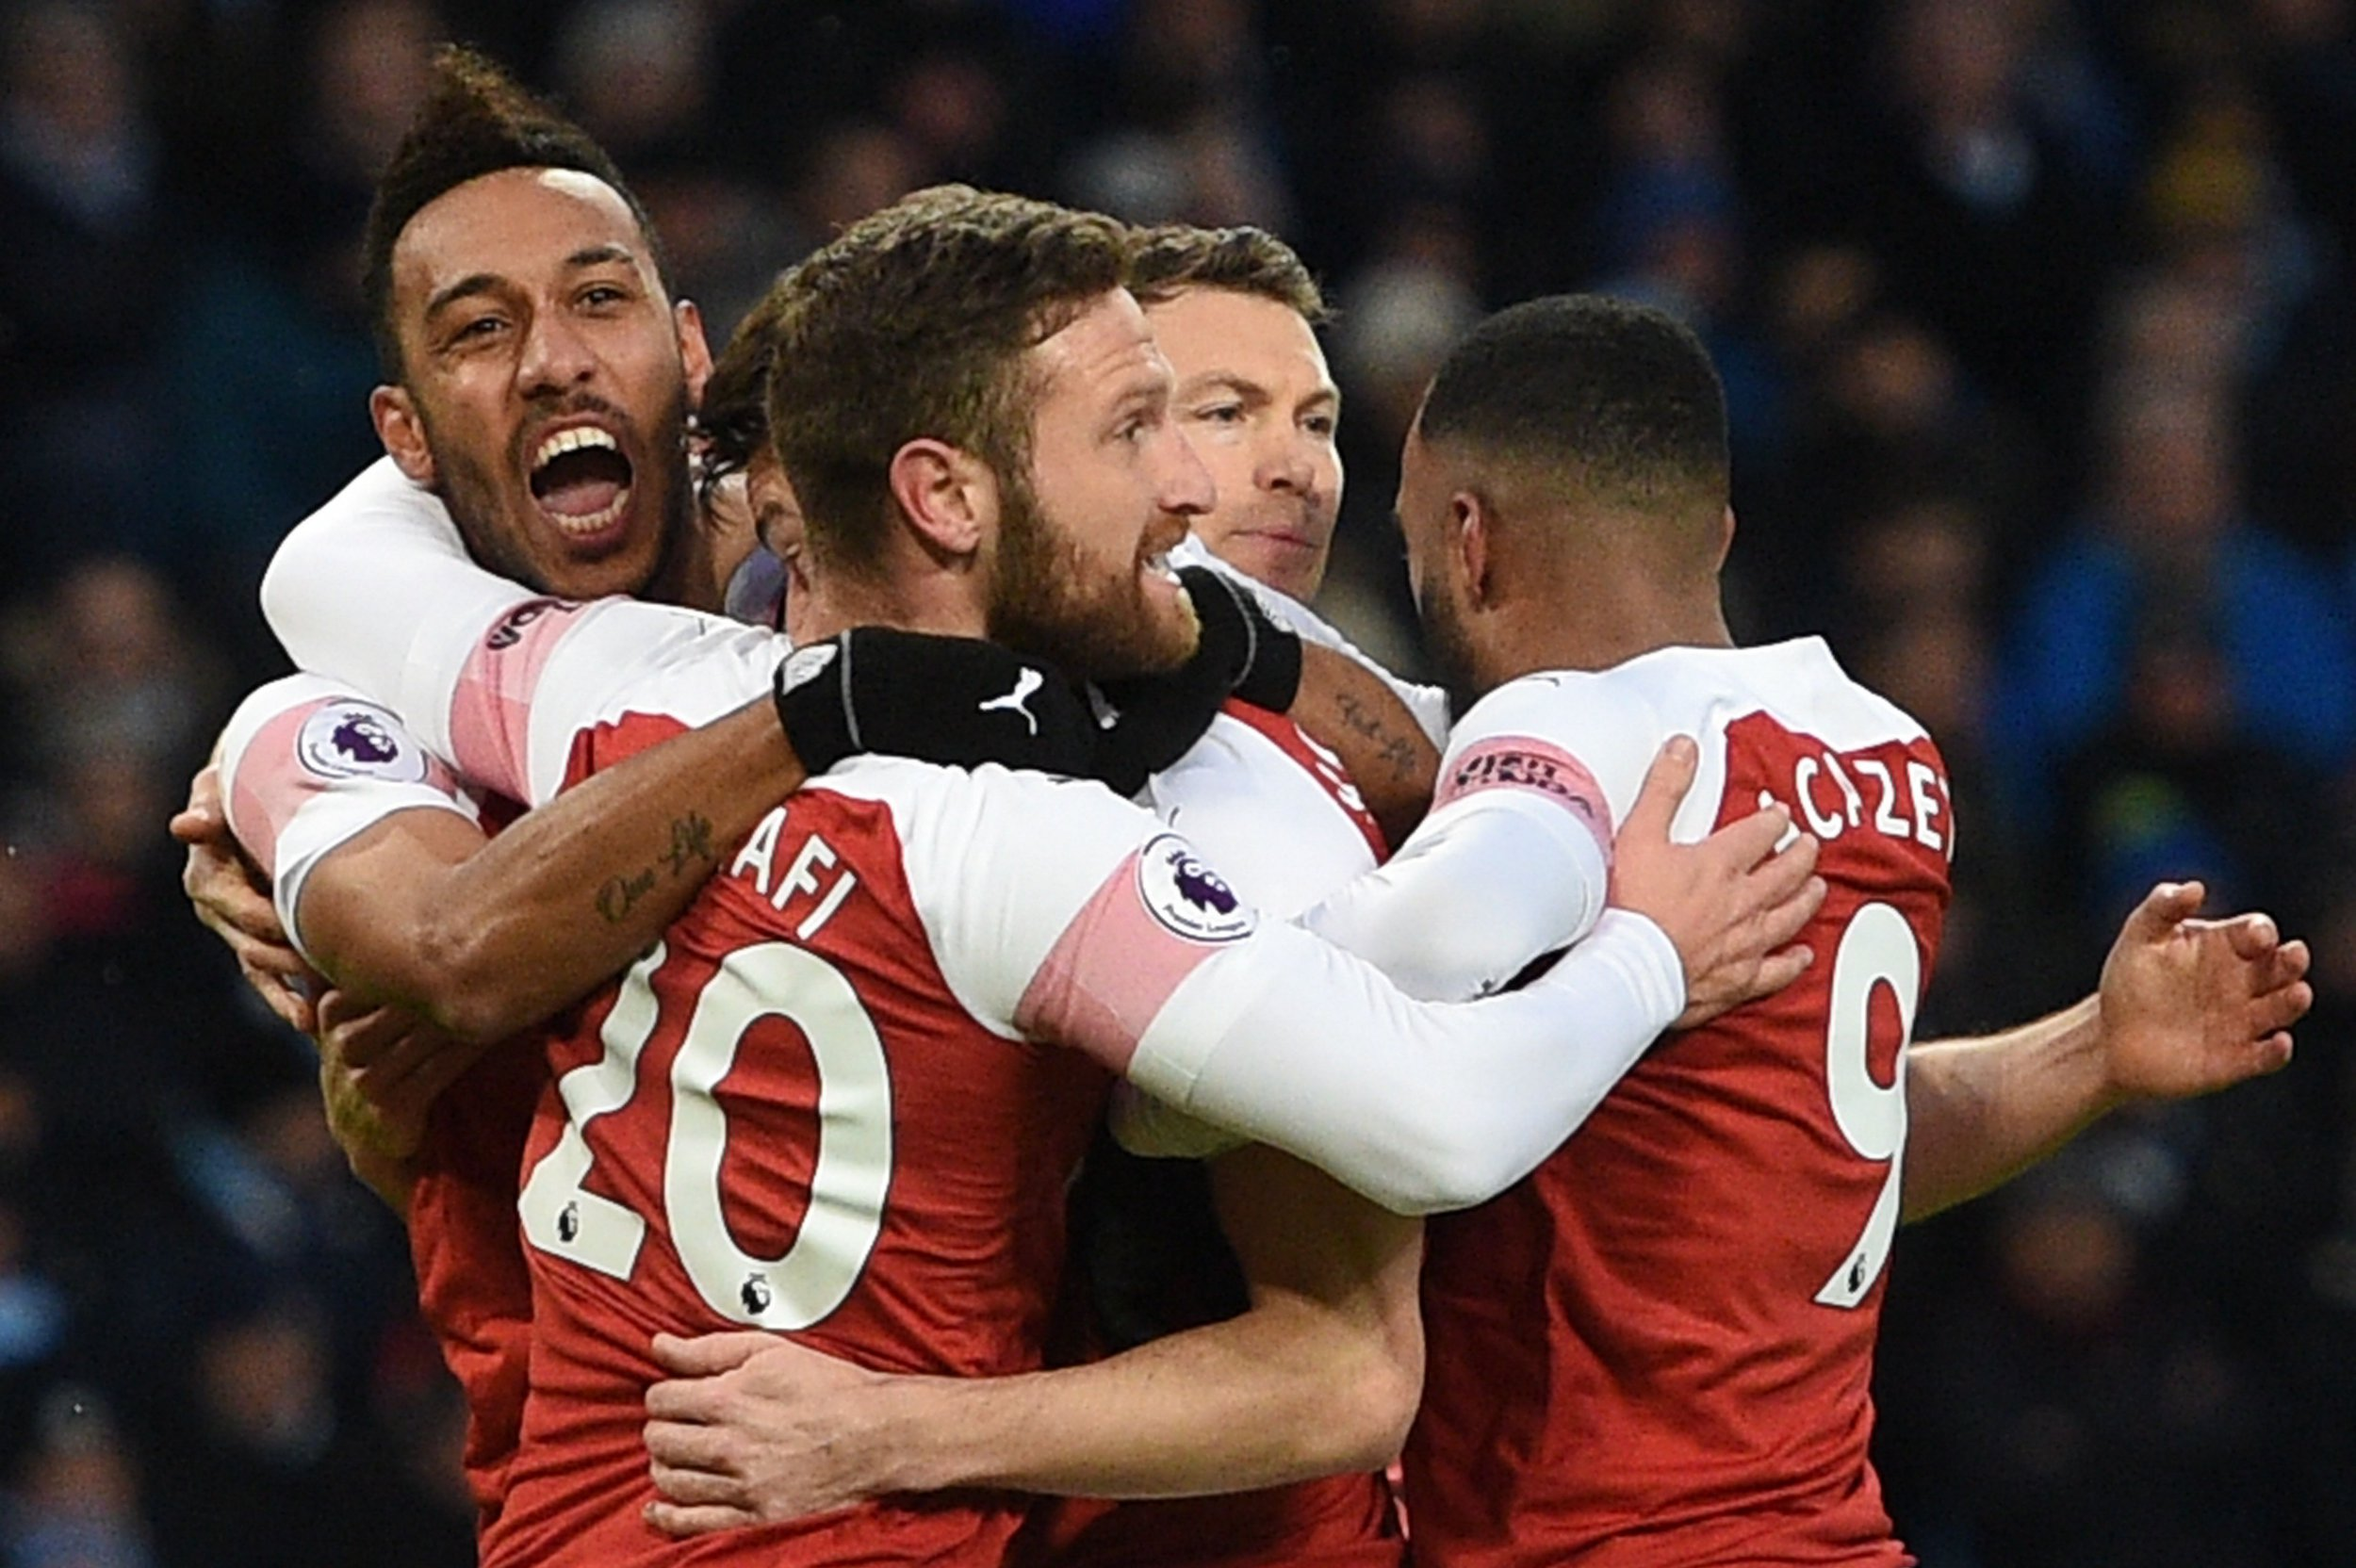 Arsenal's French defender Laurent Koscielny (C) celebrates with teammates after scoring their first goal during the English Premier League football match between Manchester City and Arsenal at the Etihad Stadium in Manchester, north west England, on February 3, 2019. (Photo by Oli SCARFF / AFP) / RESTRICTED TO EDITORIAL USE. No use with unauthorized audio, video, data, fixture lists, club/league logos or 'live' services. Online in-match use limited to 120 images. An additional 40 images may be used in extra time. No video emulation. Social media in-match use limited to 120 images. An additional 40 images may be used in extra time. No use in betting publications, games or single club/league/player publications. / OLI SCARFF/AFP/Getty Images